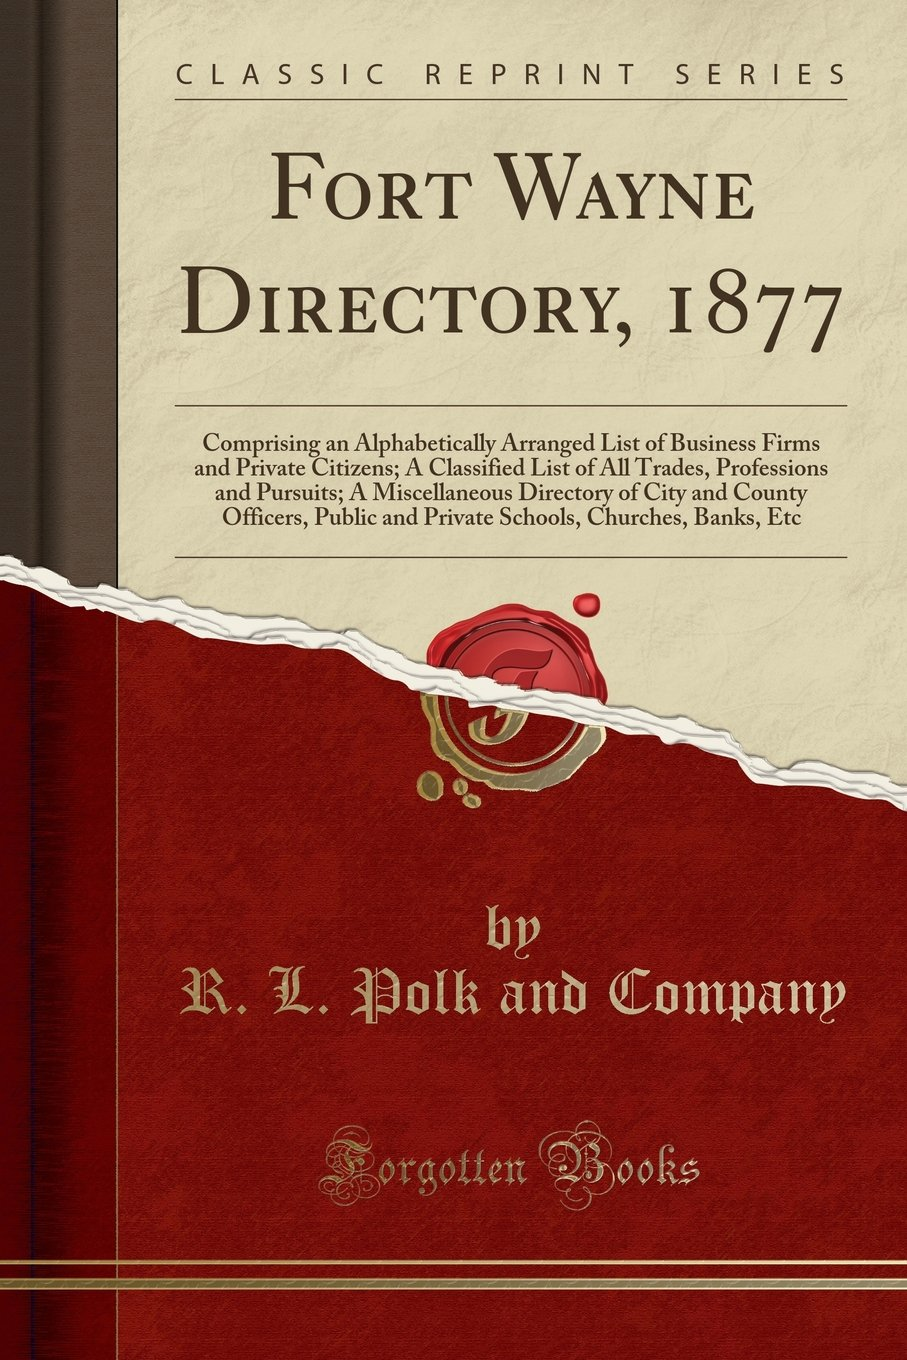 Fort Wayne Directory, 1877: Comprising an Alphabetically Arranged List of Business Firms and Private Citizens; A Classified List of All Trades, ... Officers, Public and Private Schools, Ch PDF